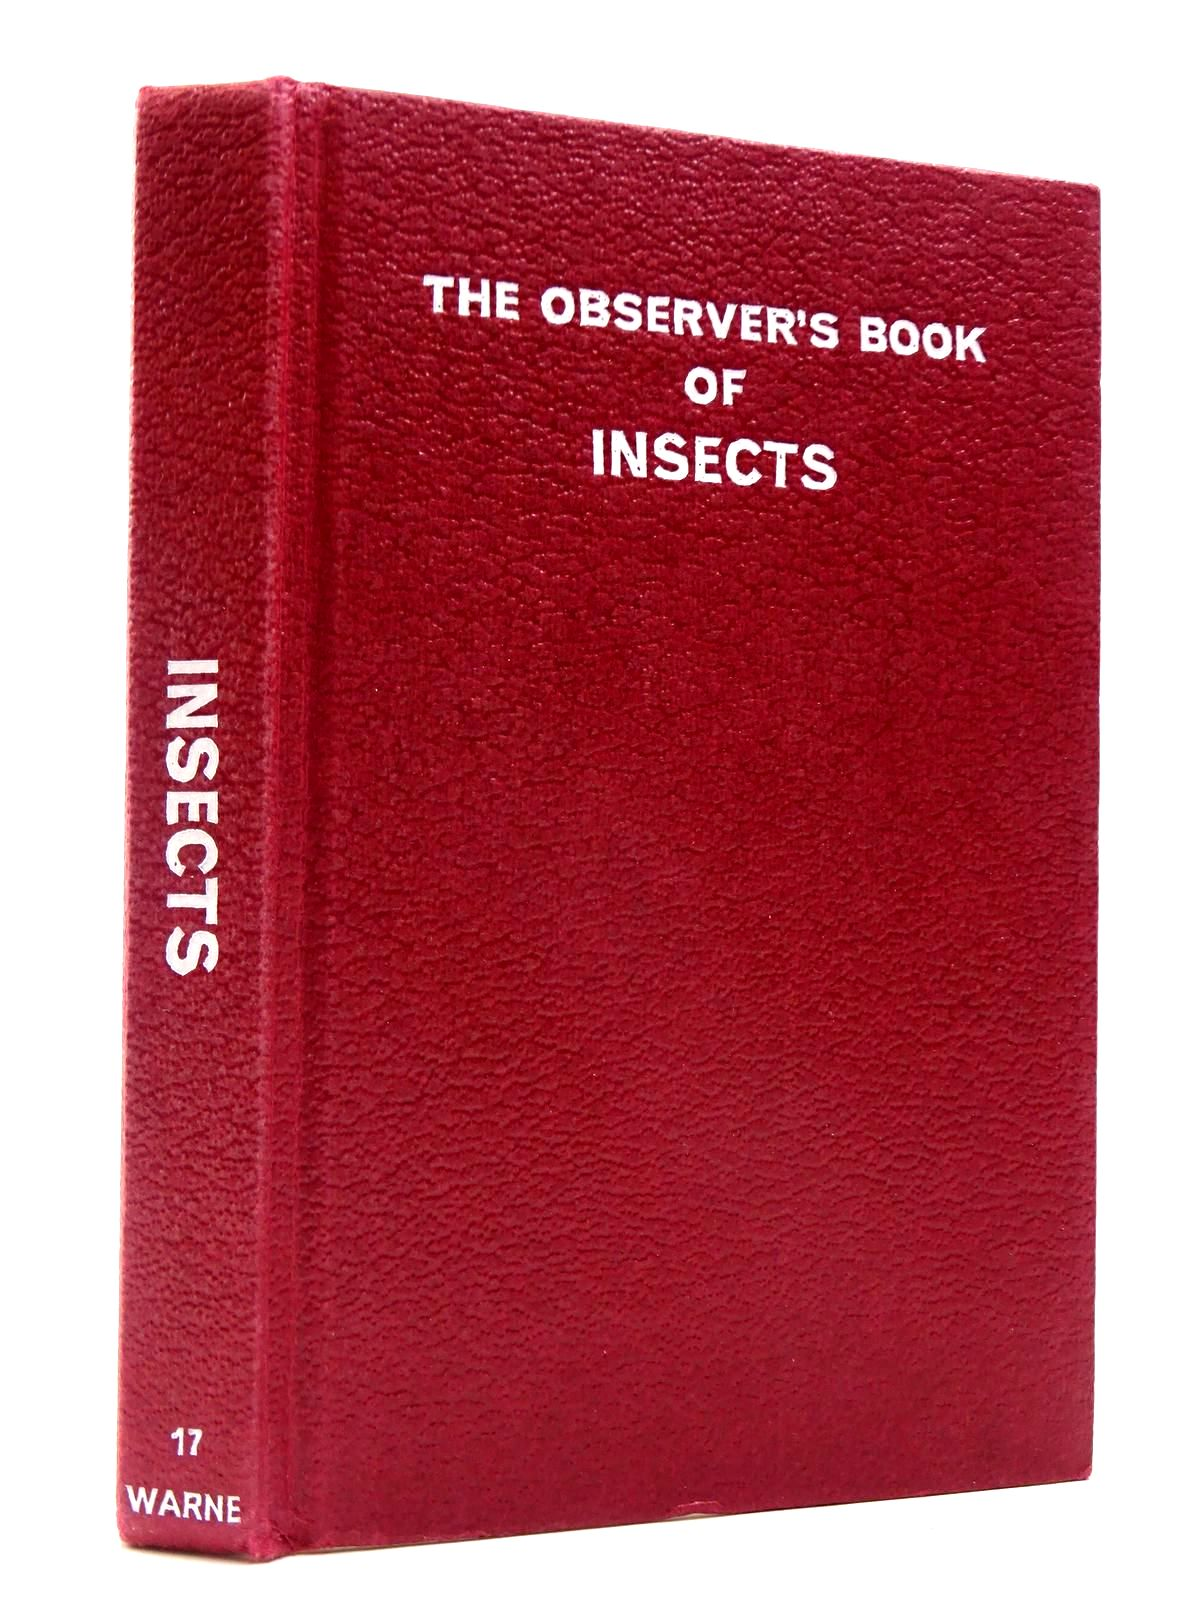 Photo of THE OBSERVER'S BOOK OF INSECTS OF THE BRITISH ISLES (CYANAMID WRAPPER) written by Linssen, E.F. illustrated by Riley, Gordon published by Frederick Warne (STOCK CODE: 2130454)  for sale by Stella & Rose's Books